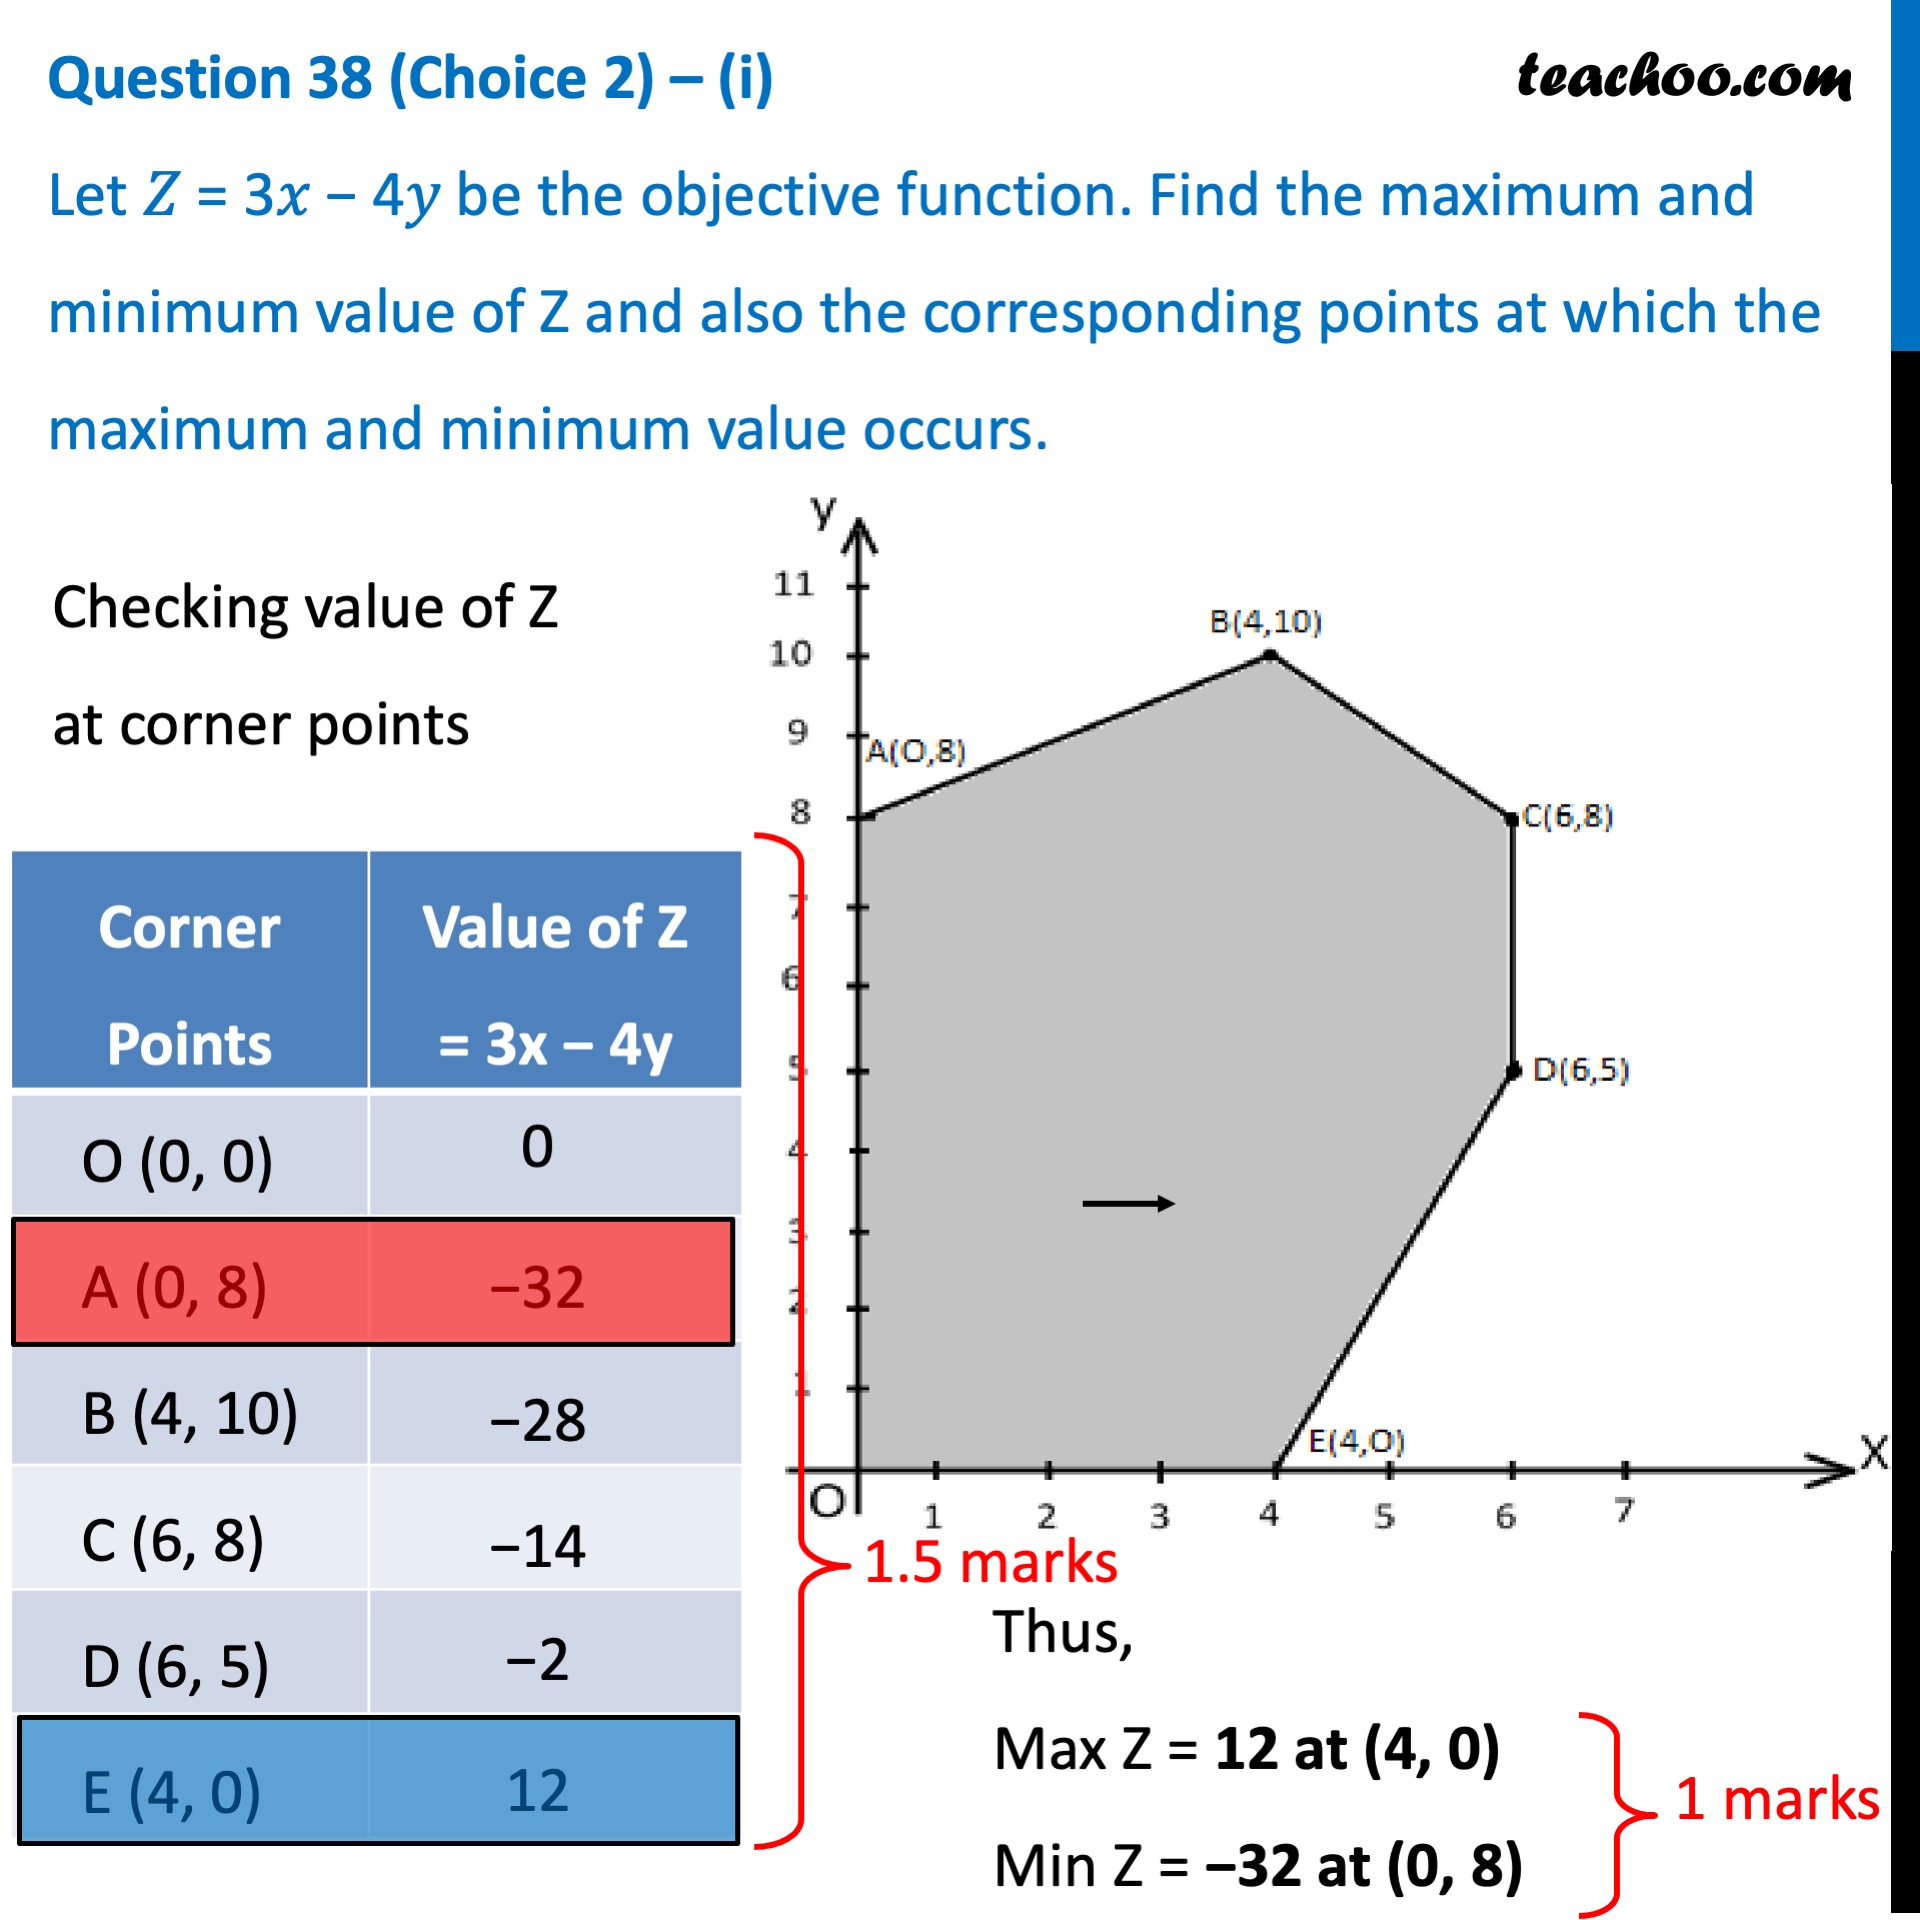 Question 38 (Choice 2) - CBSE Class 12 Sample Paper for 2021 Boards - Part 2